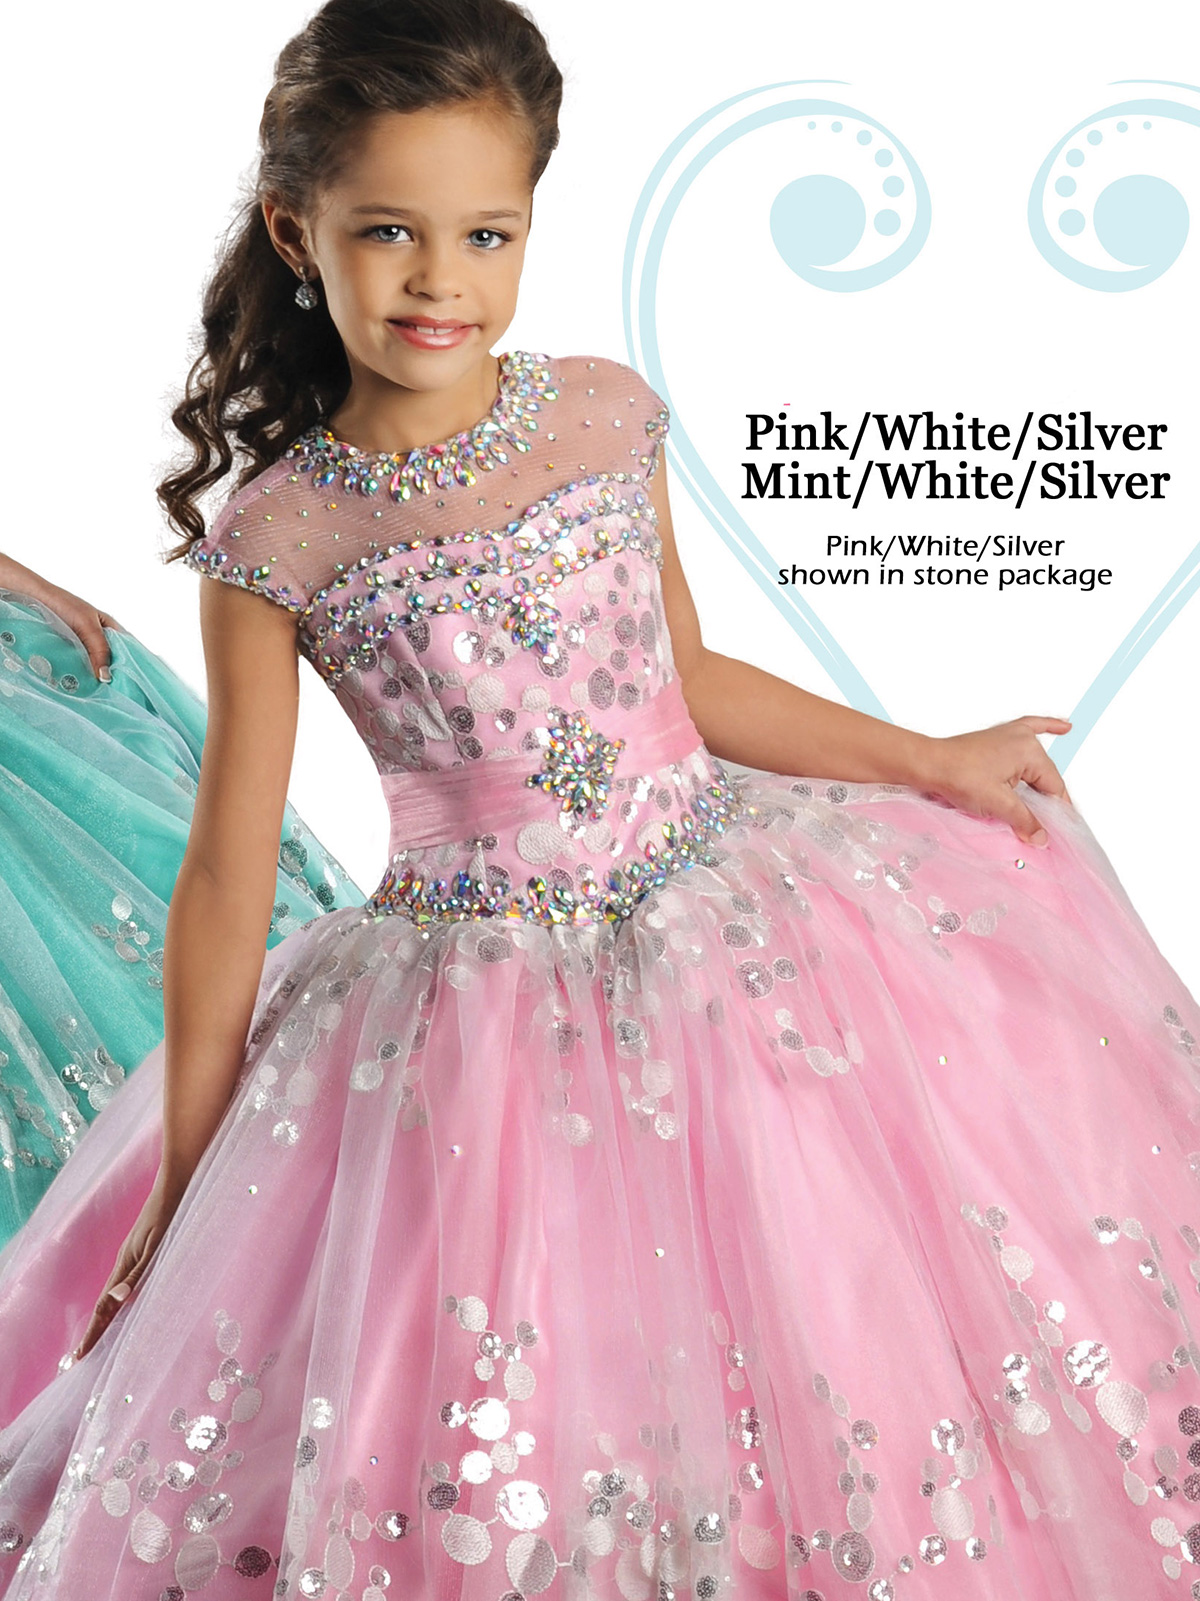 Ritzee Girls Polka Dot Girls Pageant Dress 7020pageantdesigns